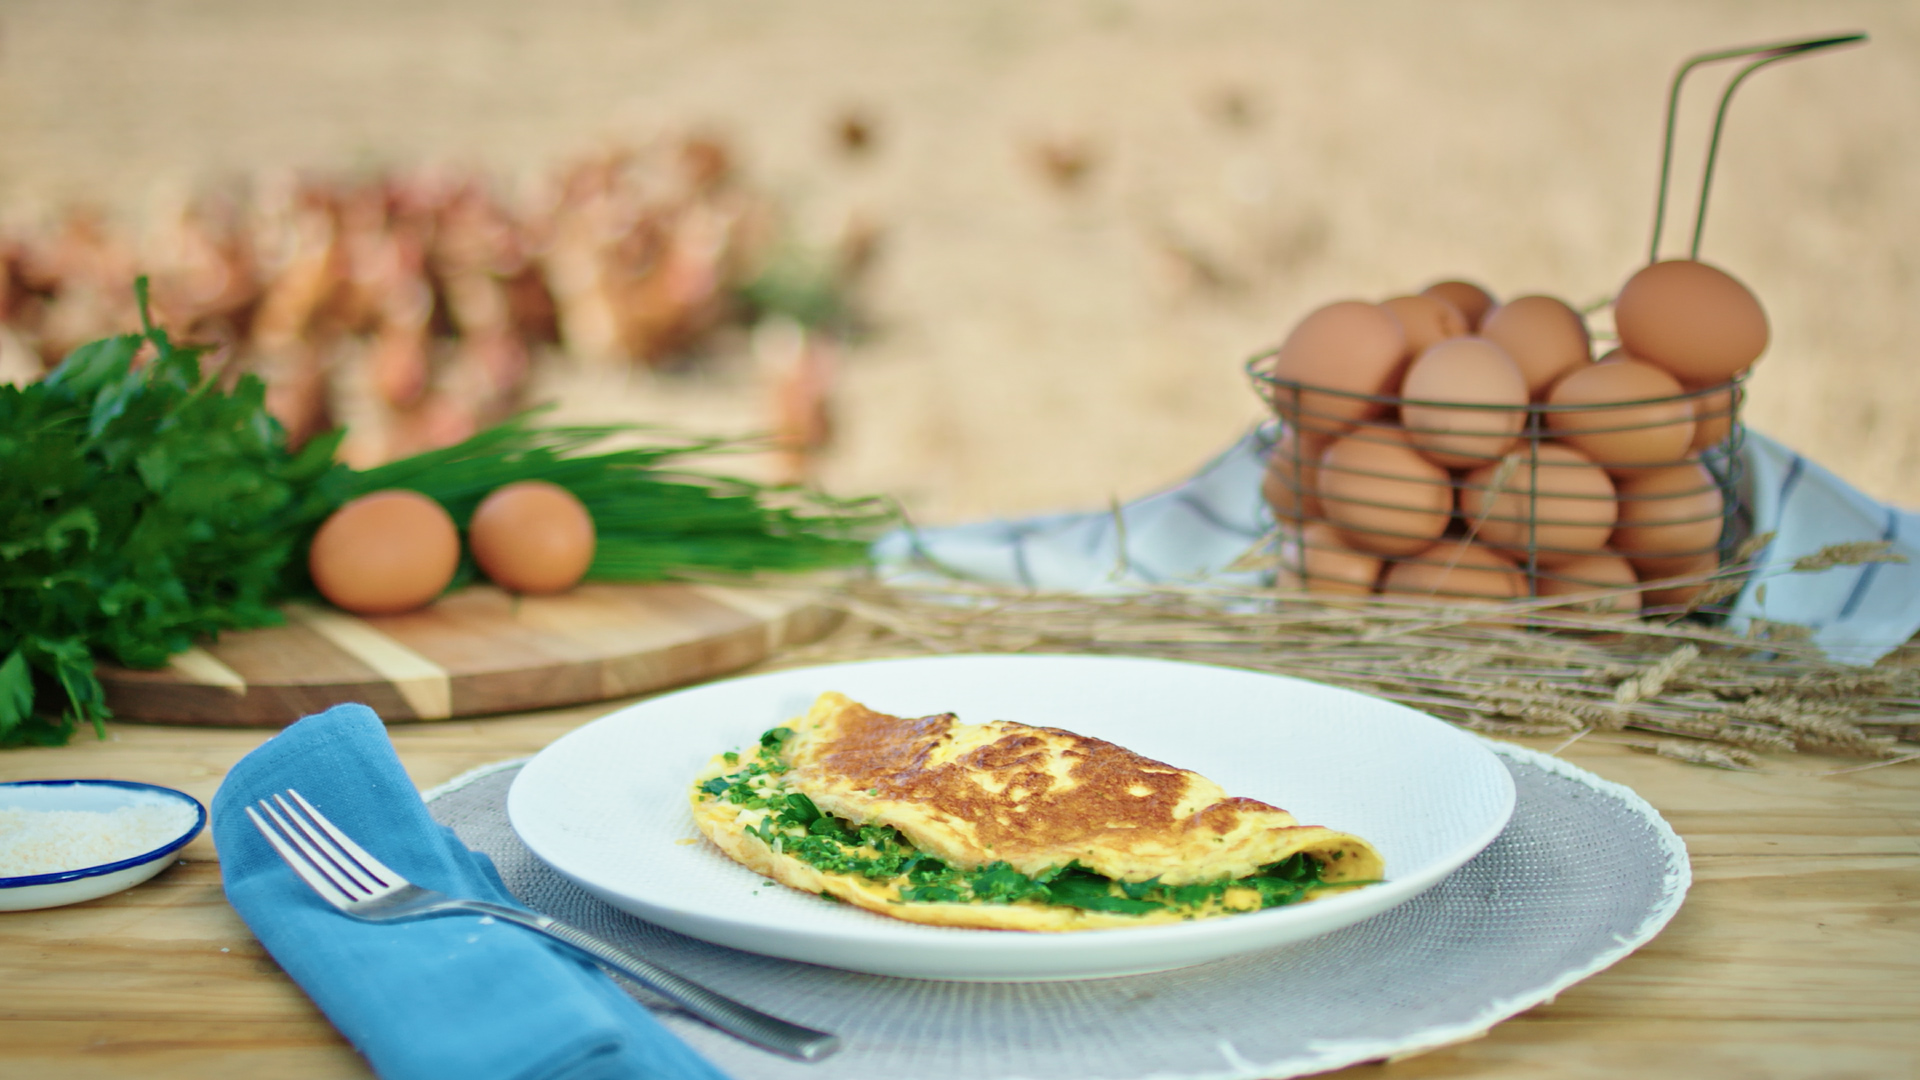 Herb and Feta Omelette